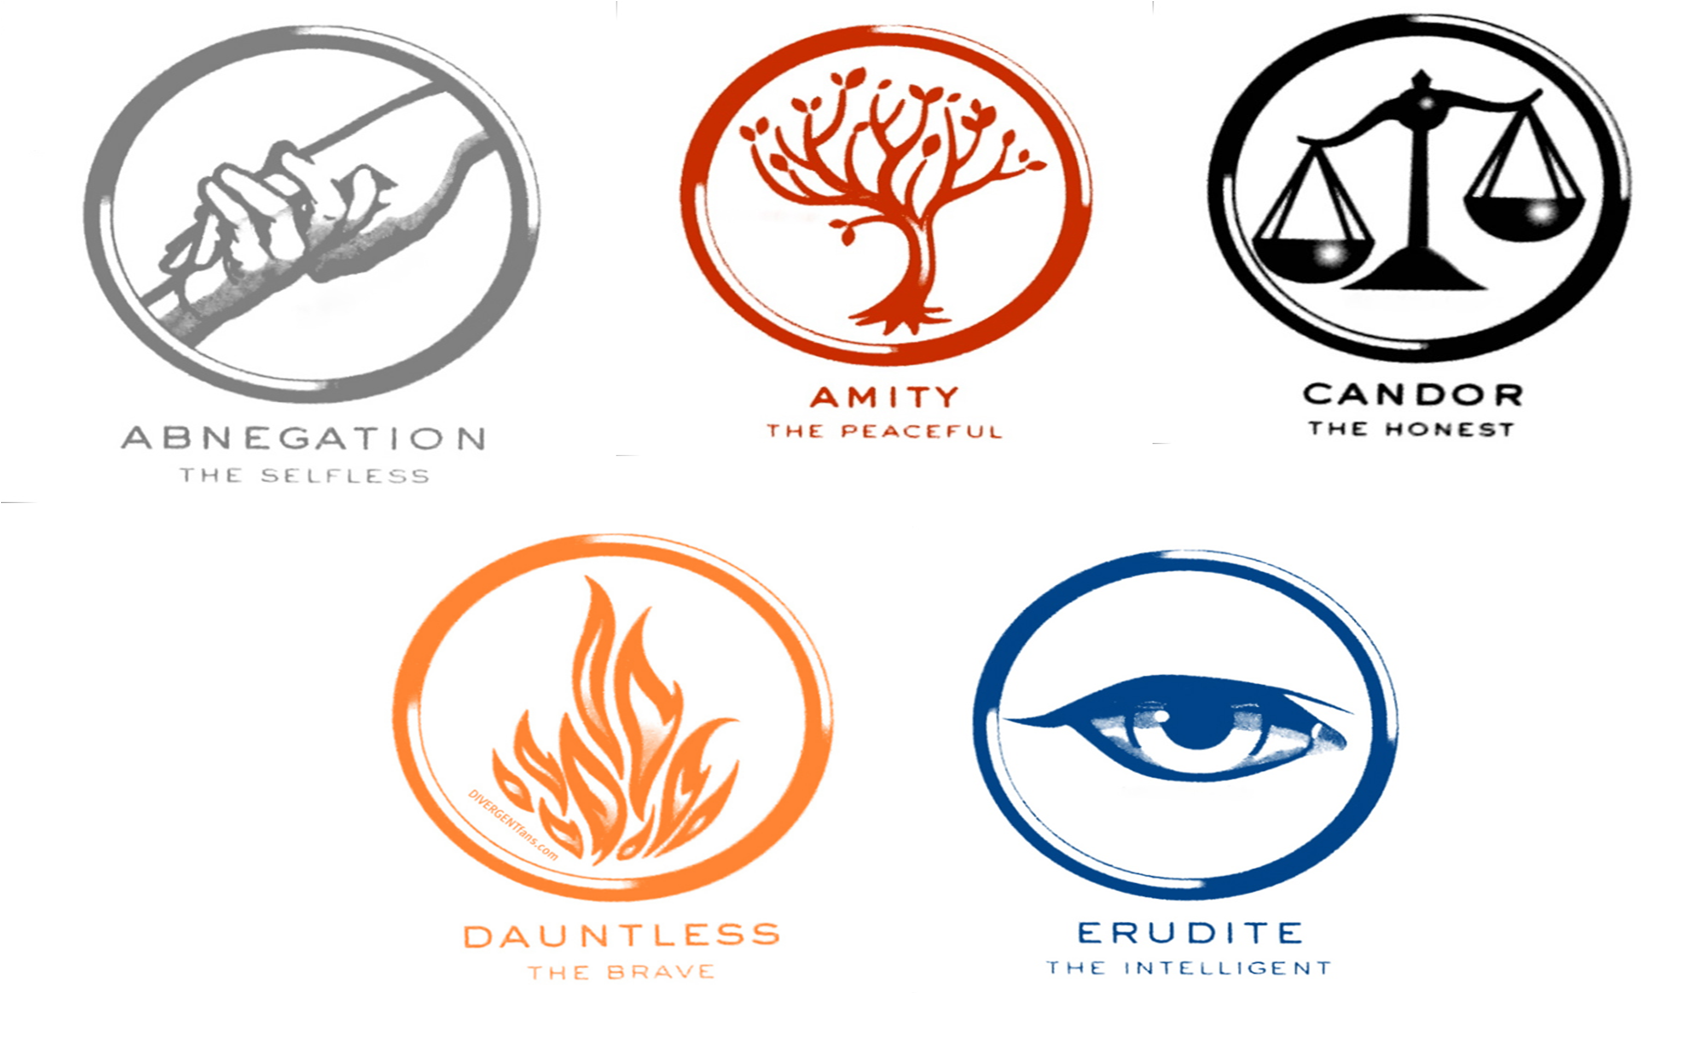 What Divergent Faction are you? (1)